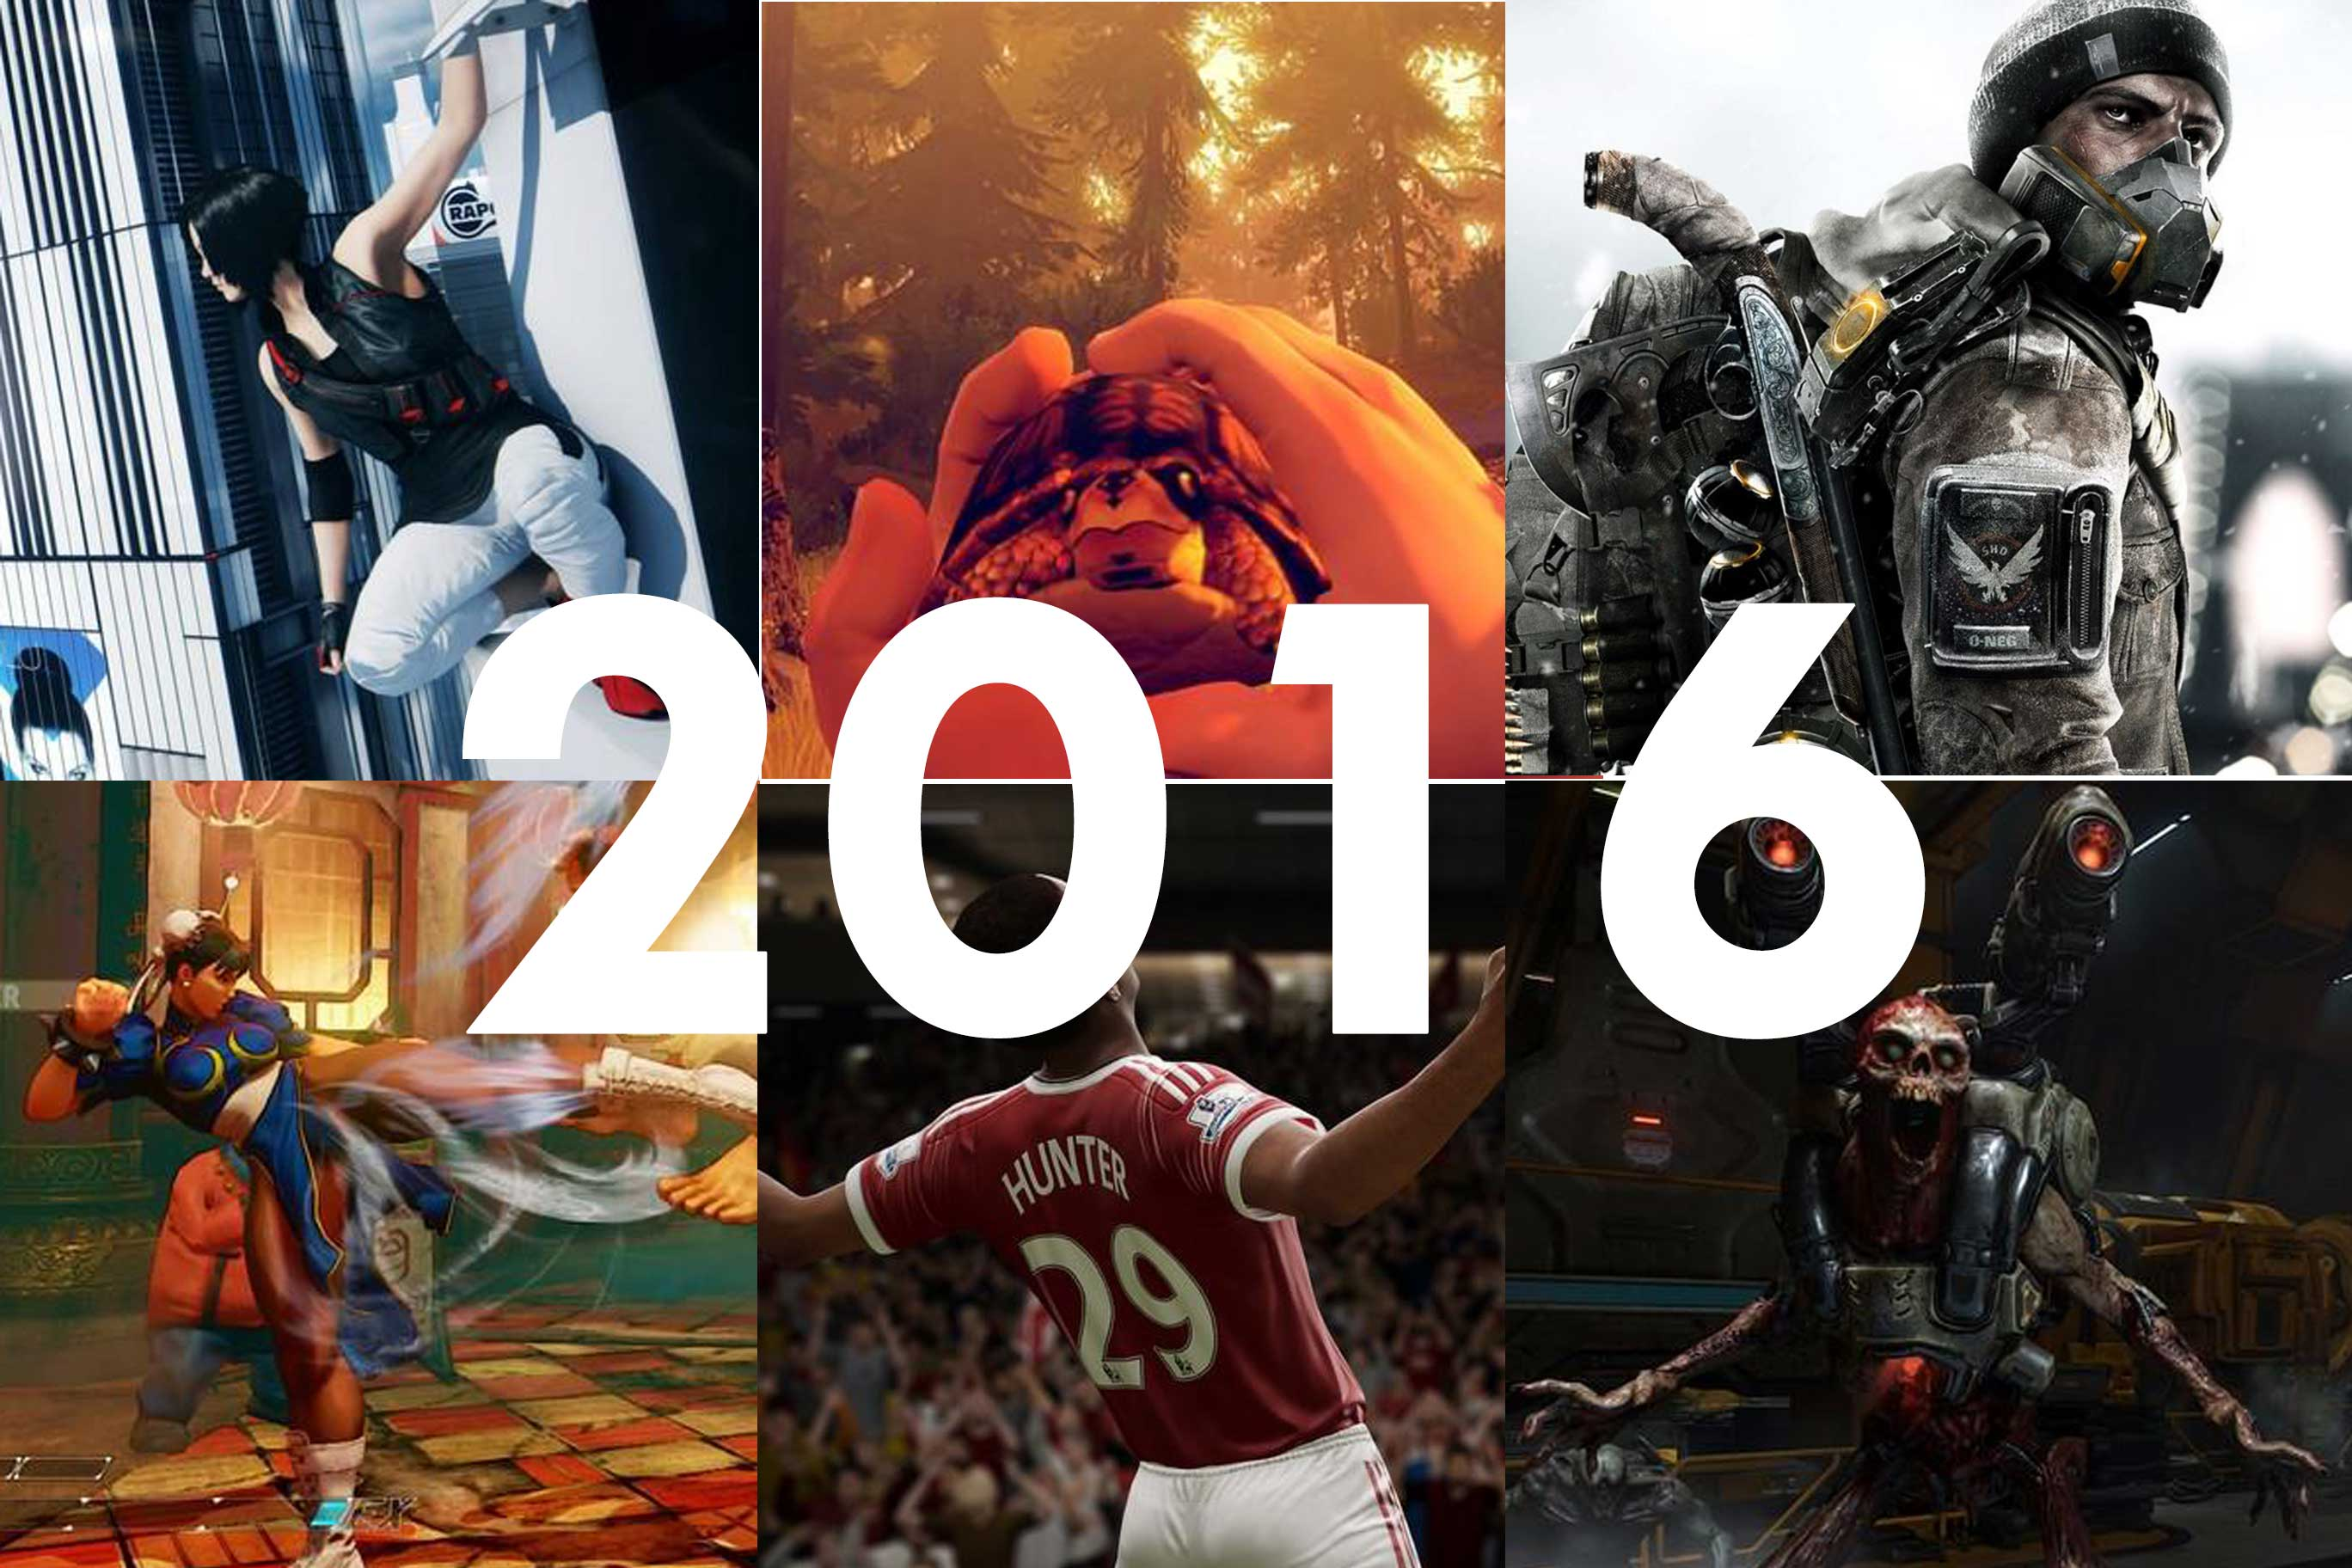 Looking Back at 2016: The biggest disappointments (that weren't No Man's Sky)